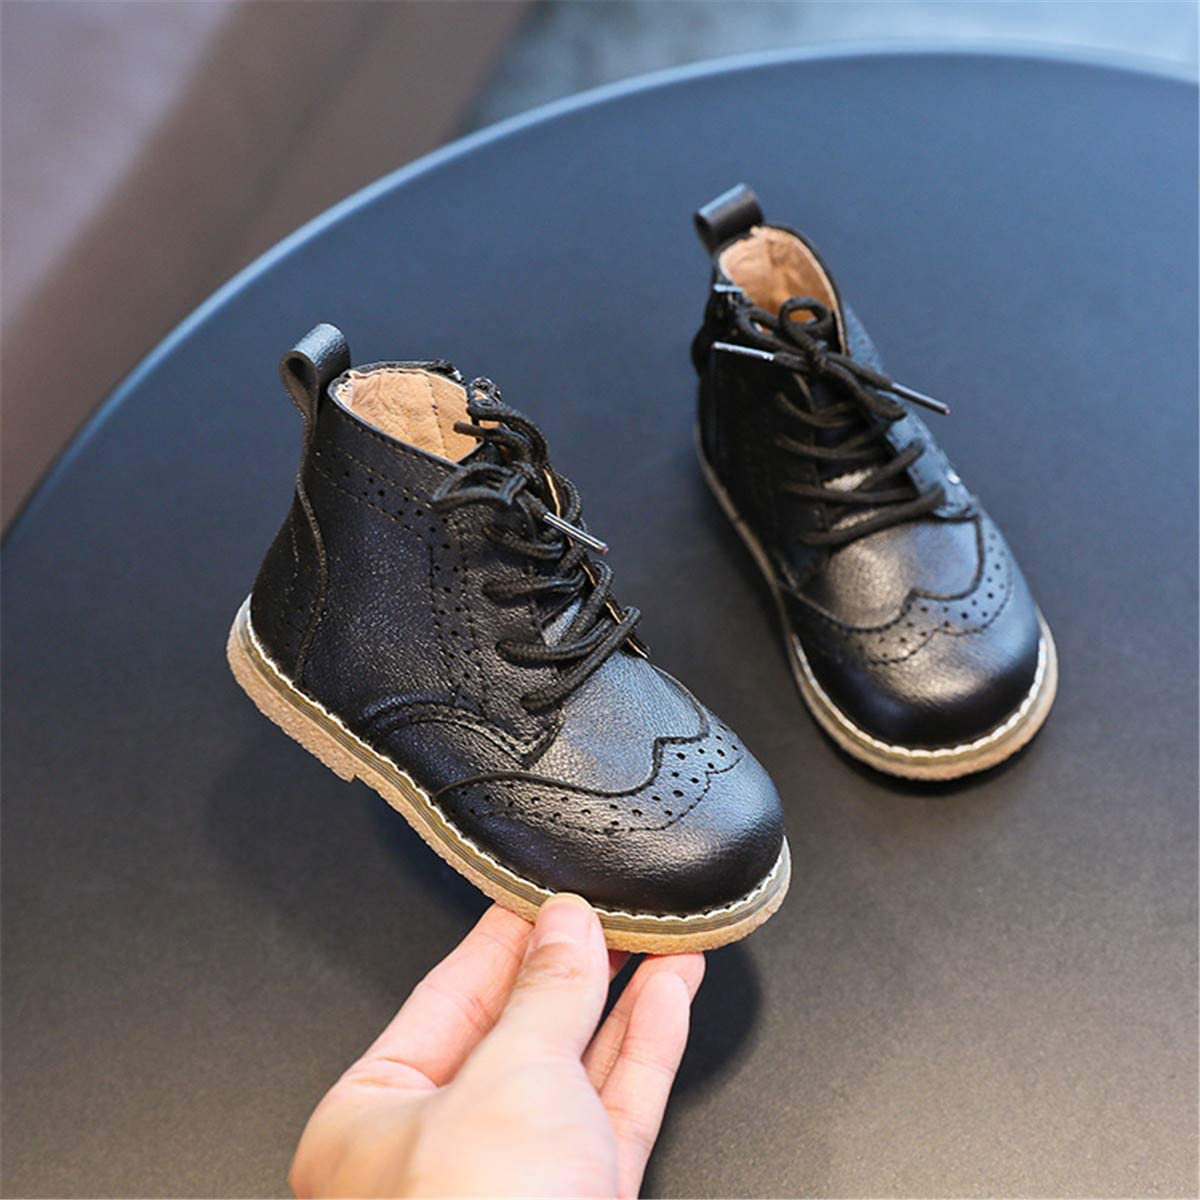 Baby//Toddler//Little Kid ENERCAKE Toddler Girls Boys Hiking Boots Anti-Slip Waterproof Side Zipper Lace-Up Snow Boots